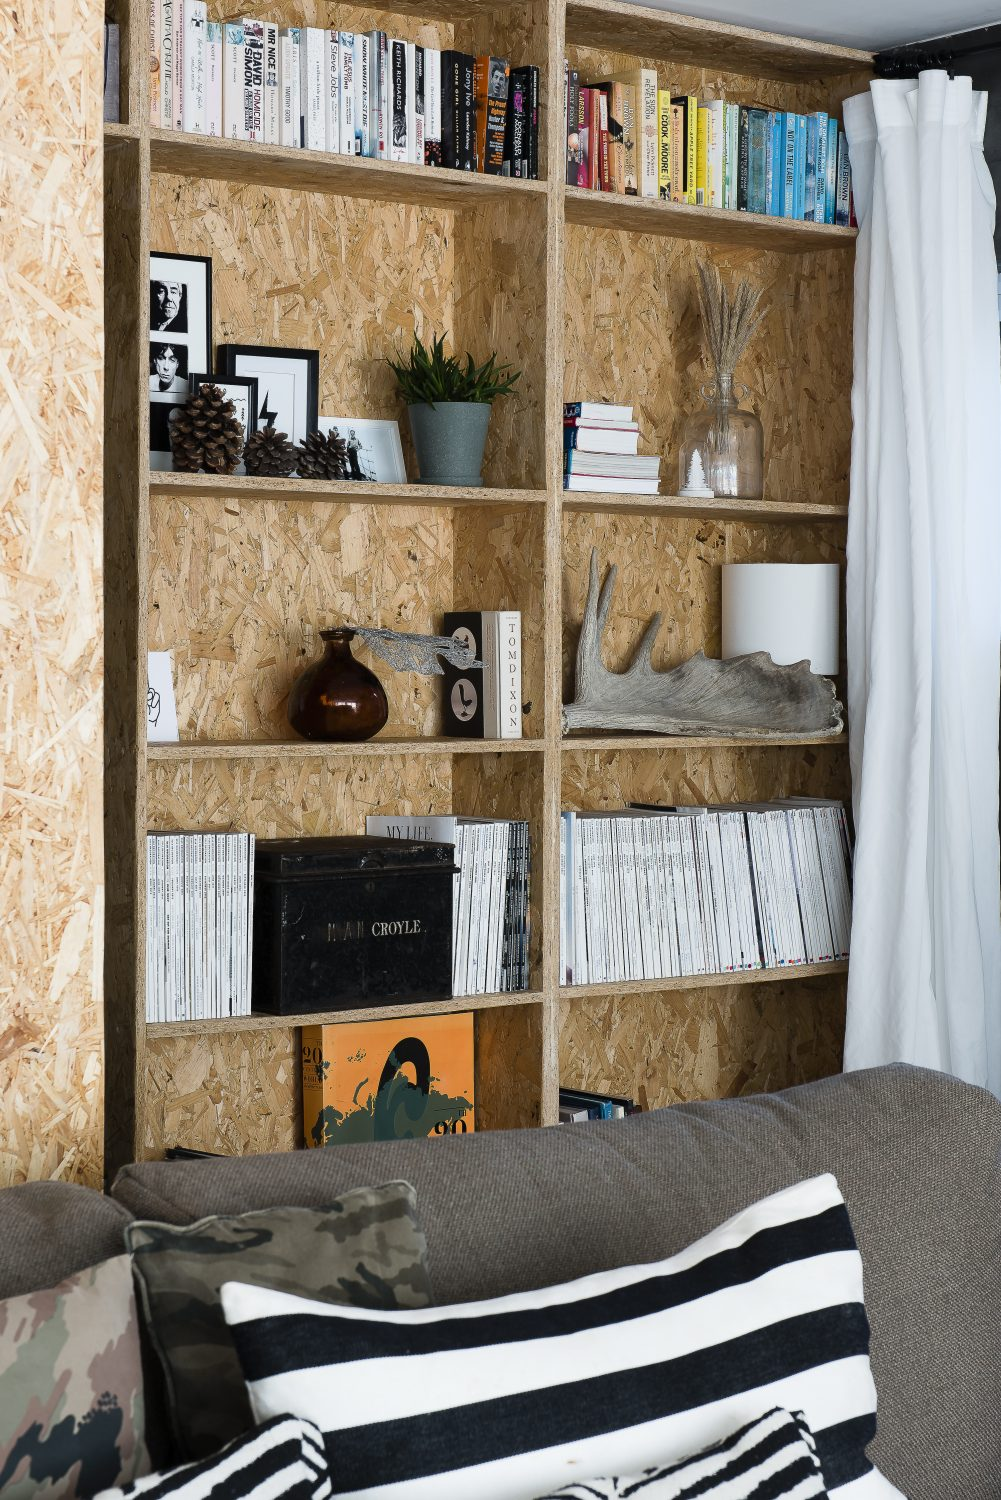 The back wall and shelves have been clad with OSB (flakeboard), which has been used throughout the house